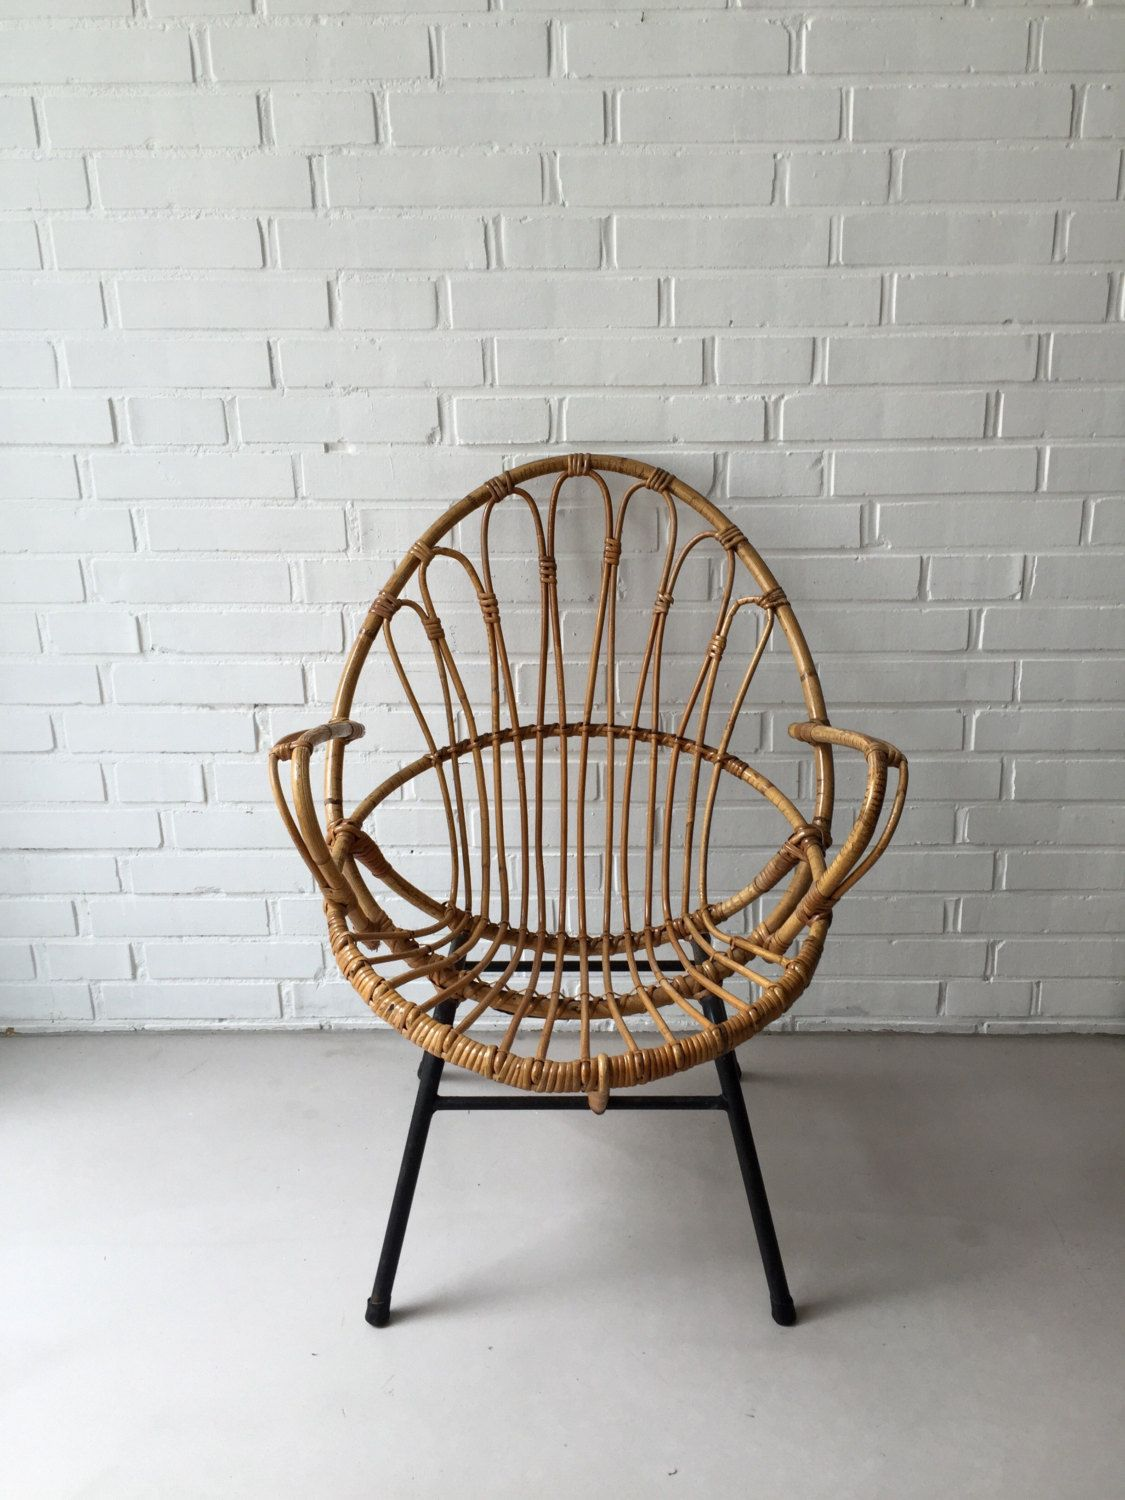 Korbsessel Rattan Vintage Rattan Chair Wicker Chair Bamboo Chairs Vintage